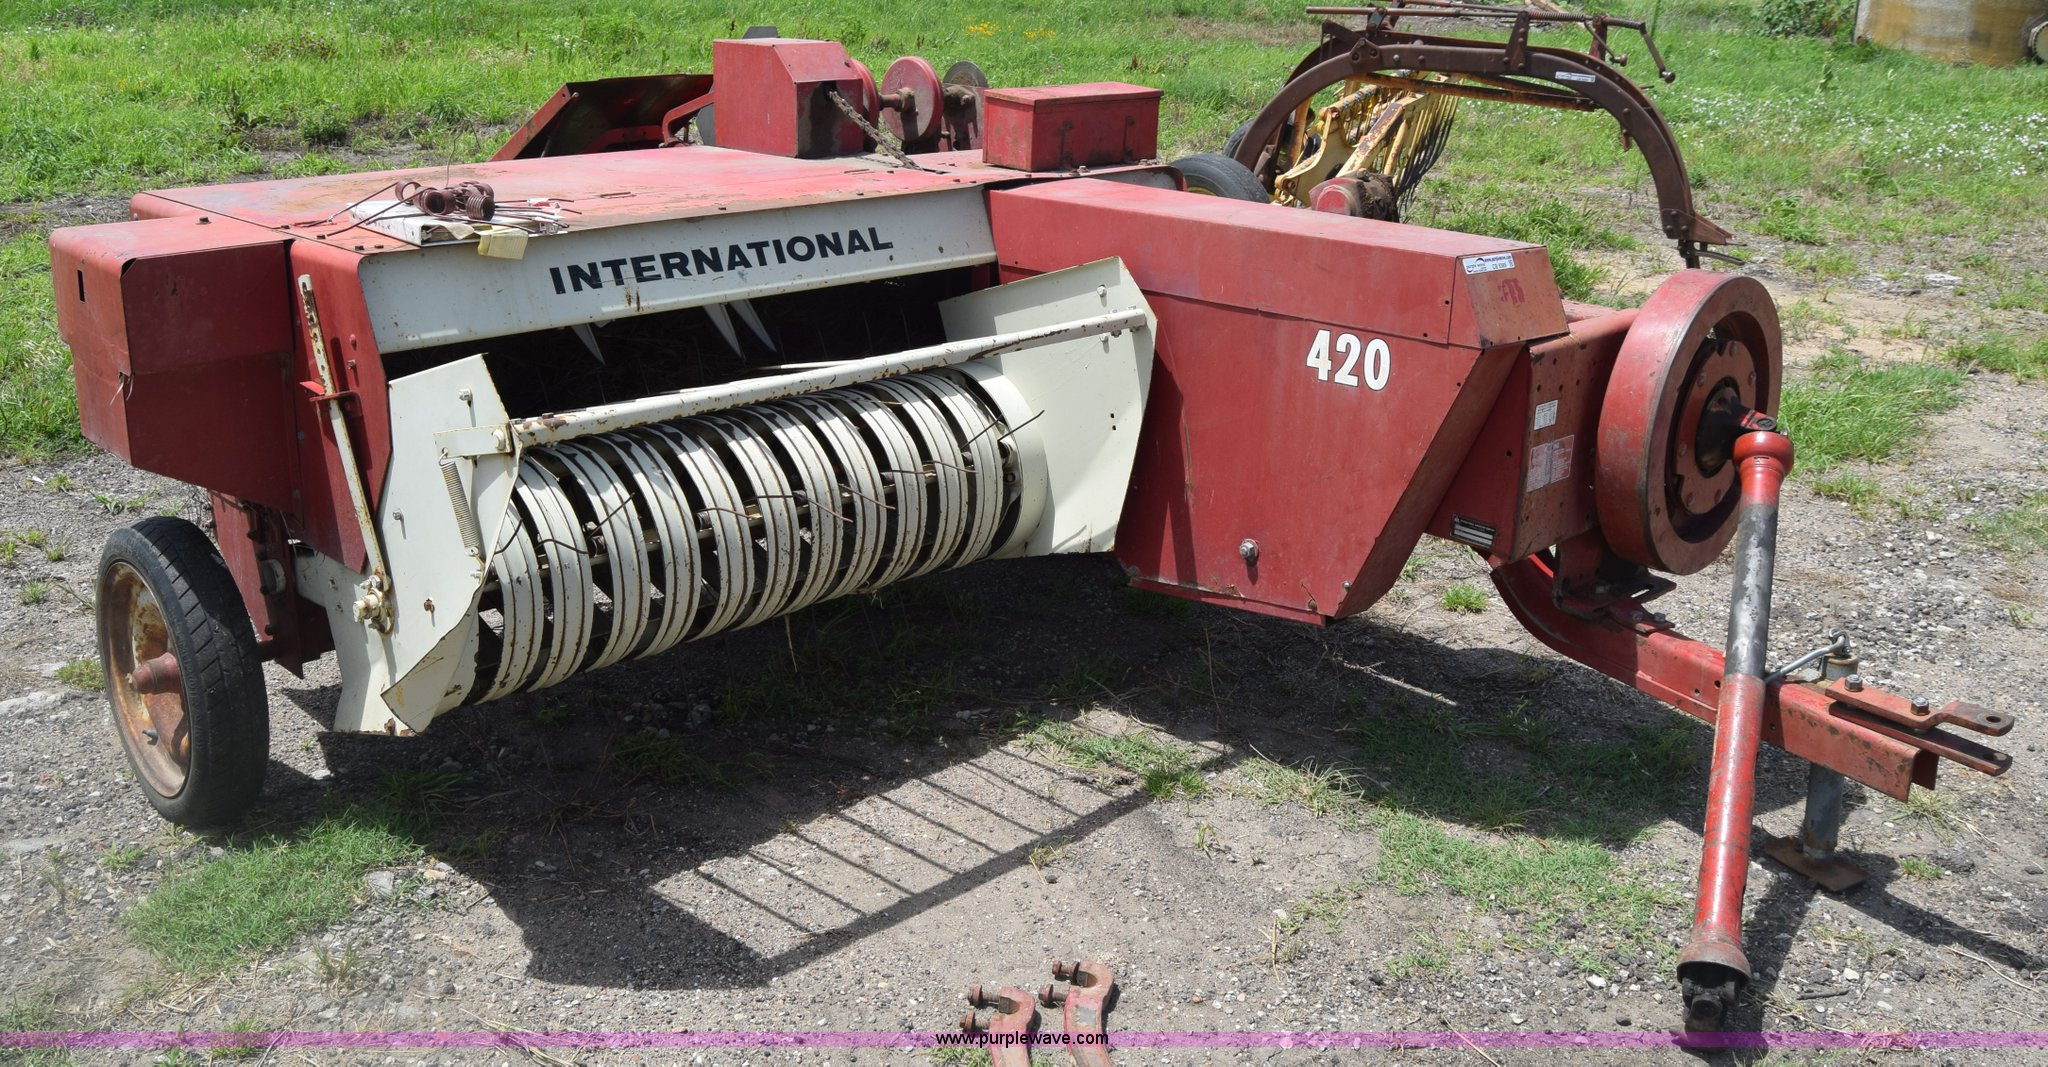 ... International 420 small square baler Full size in new window ...